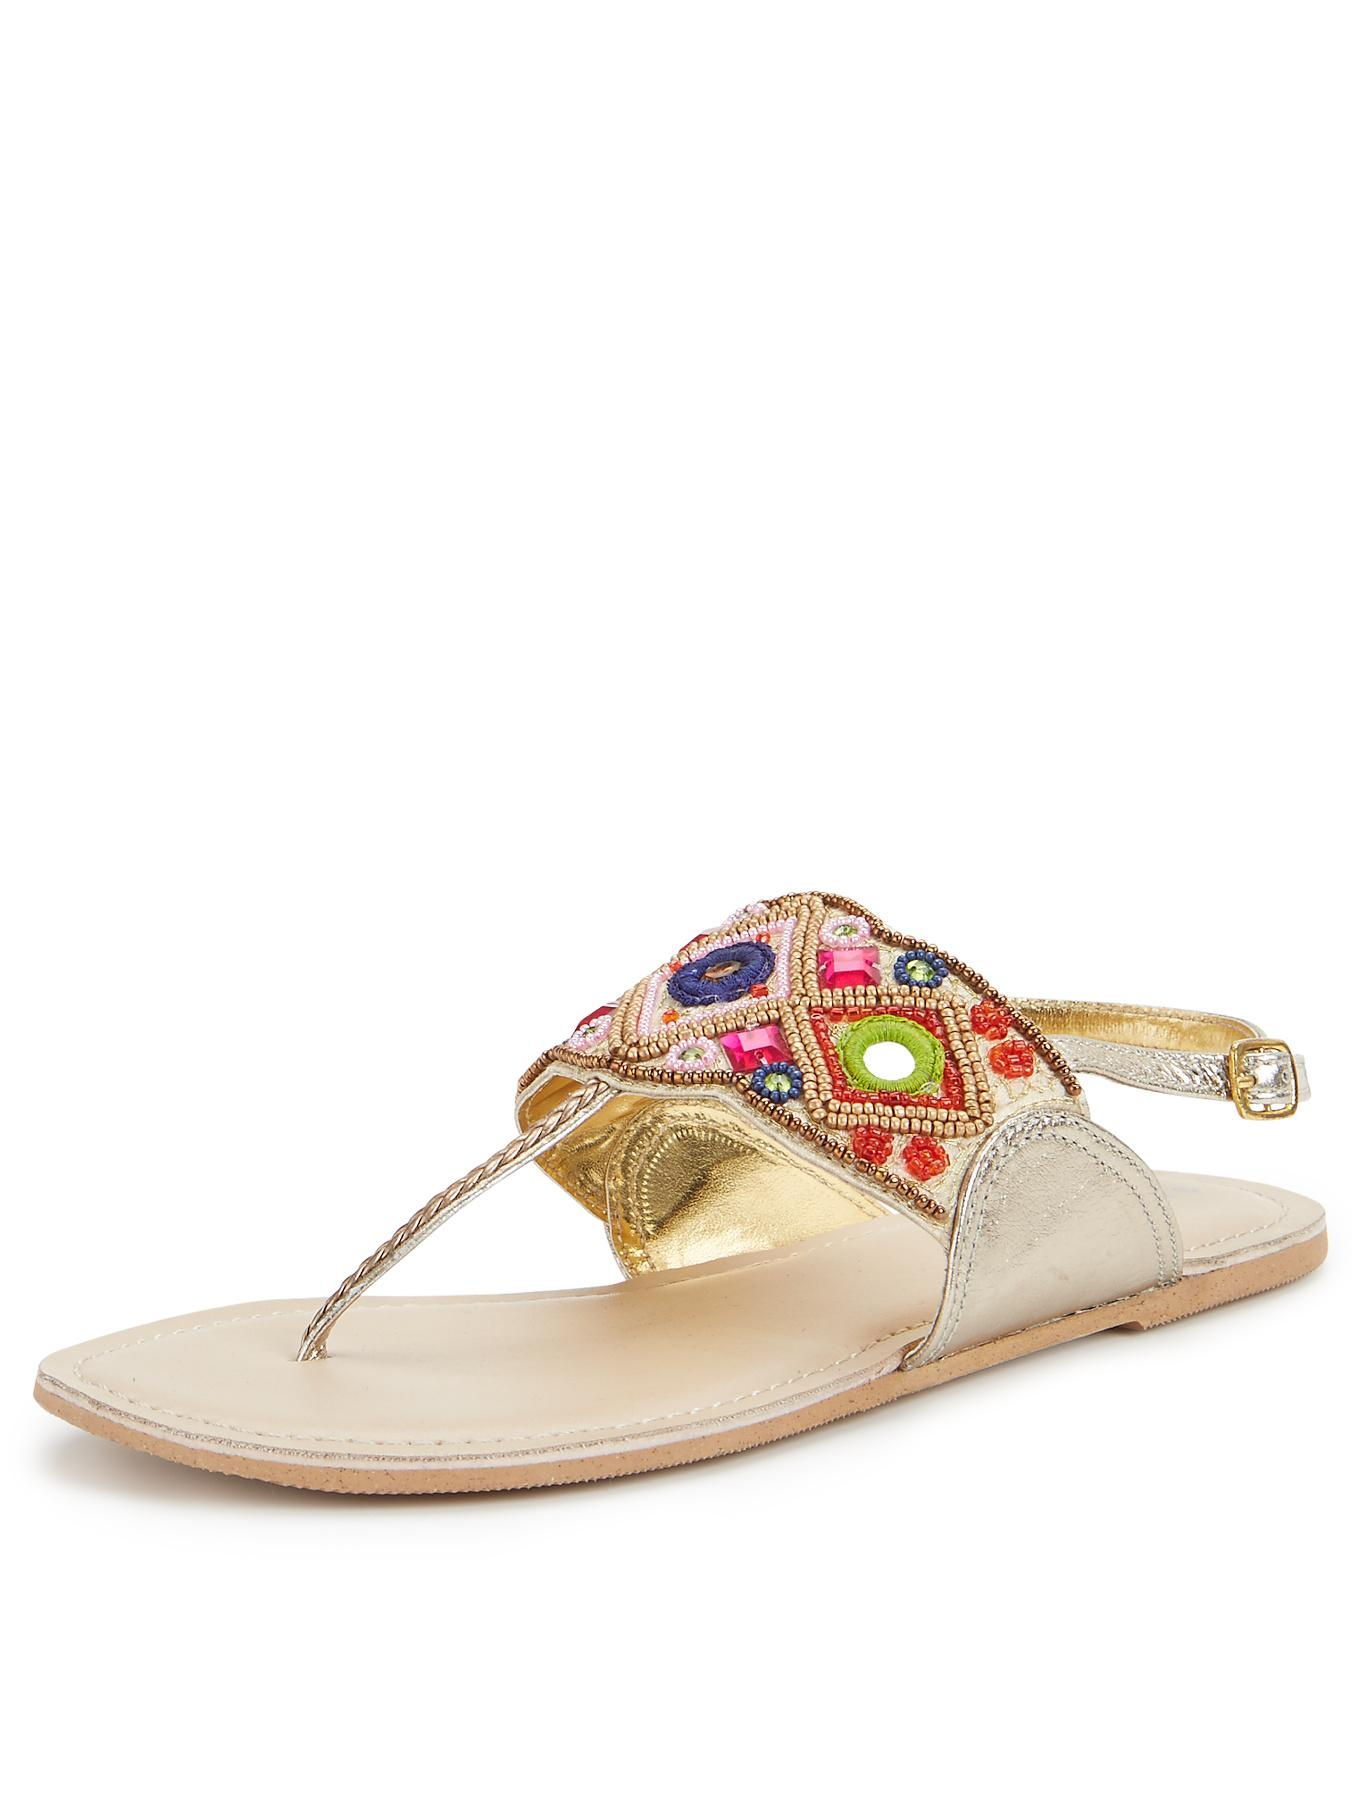 Shoe Box Embellished Toe Post Flat Sandals